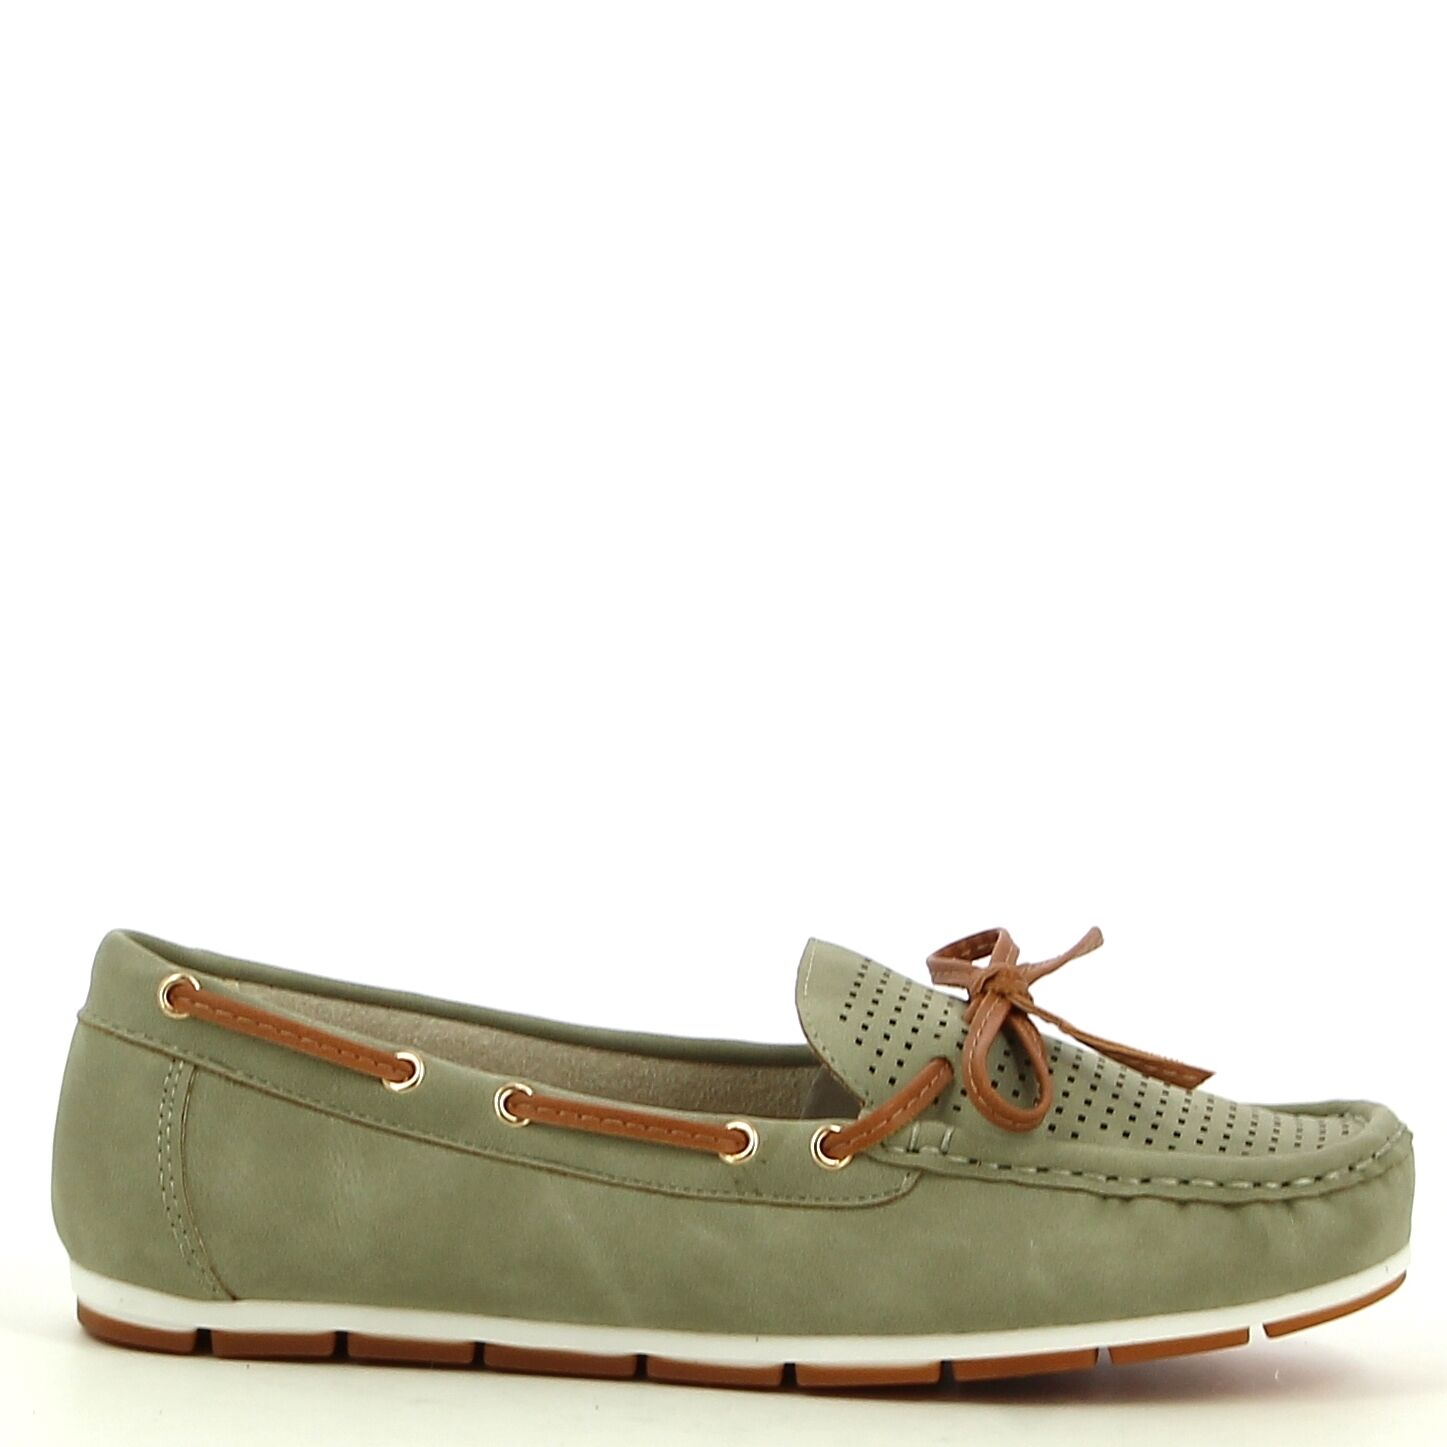 Ken Shoe Fashion - Groen - Instappers/Mocassins